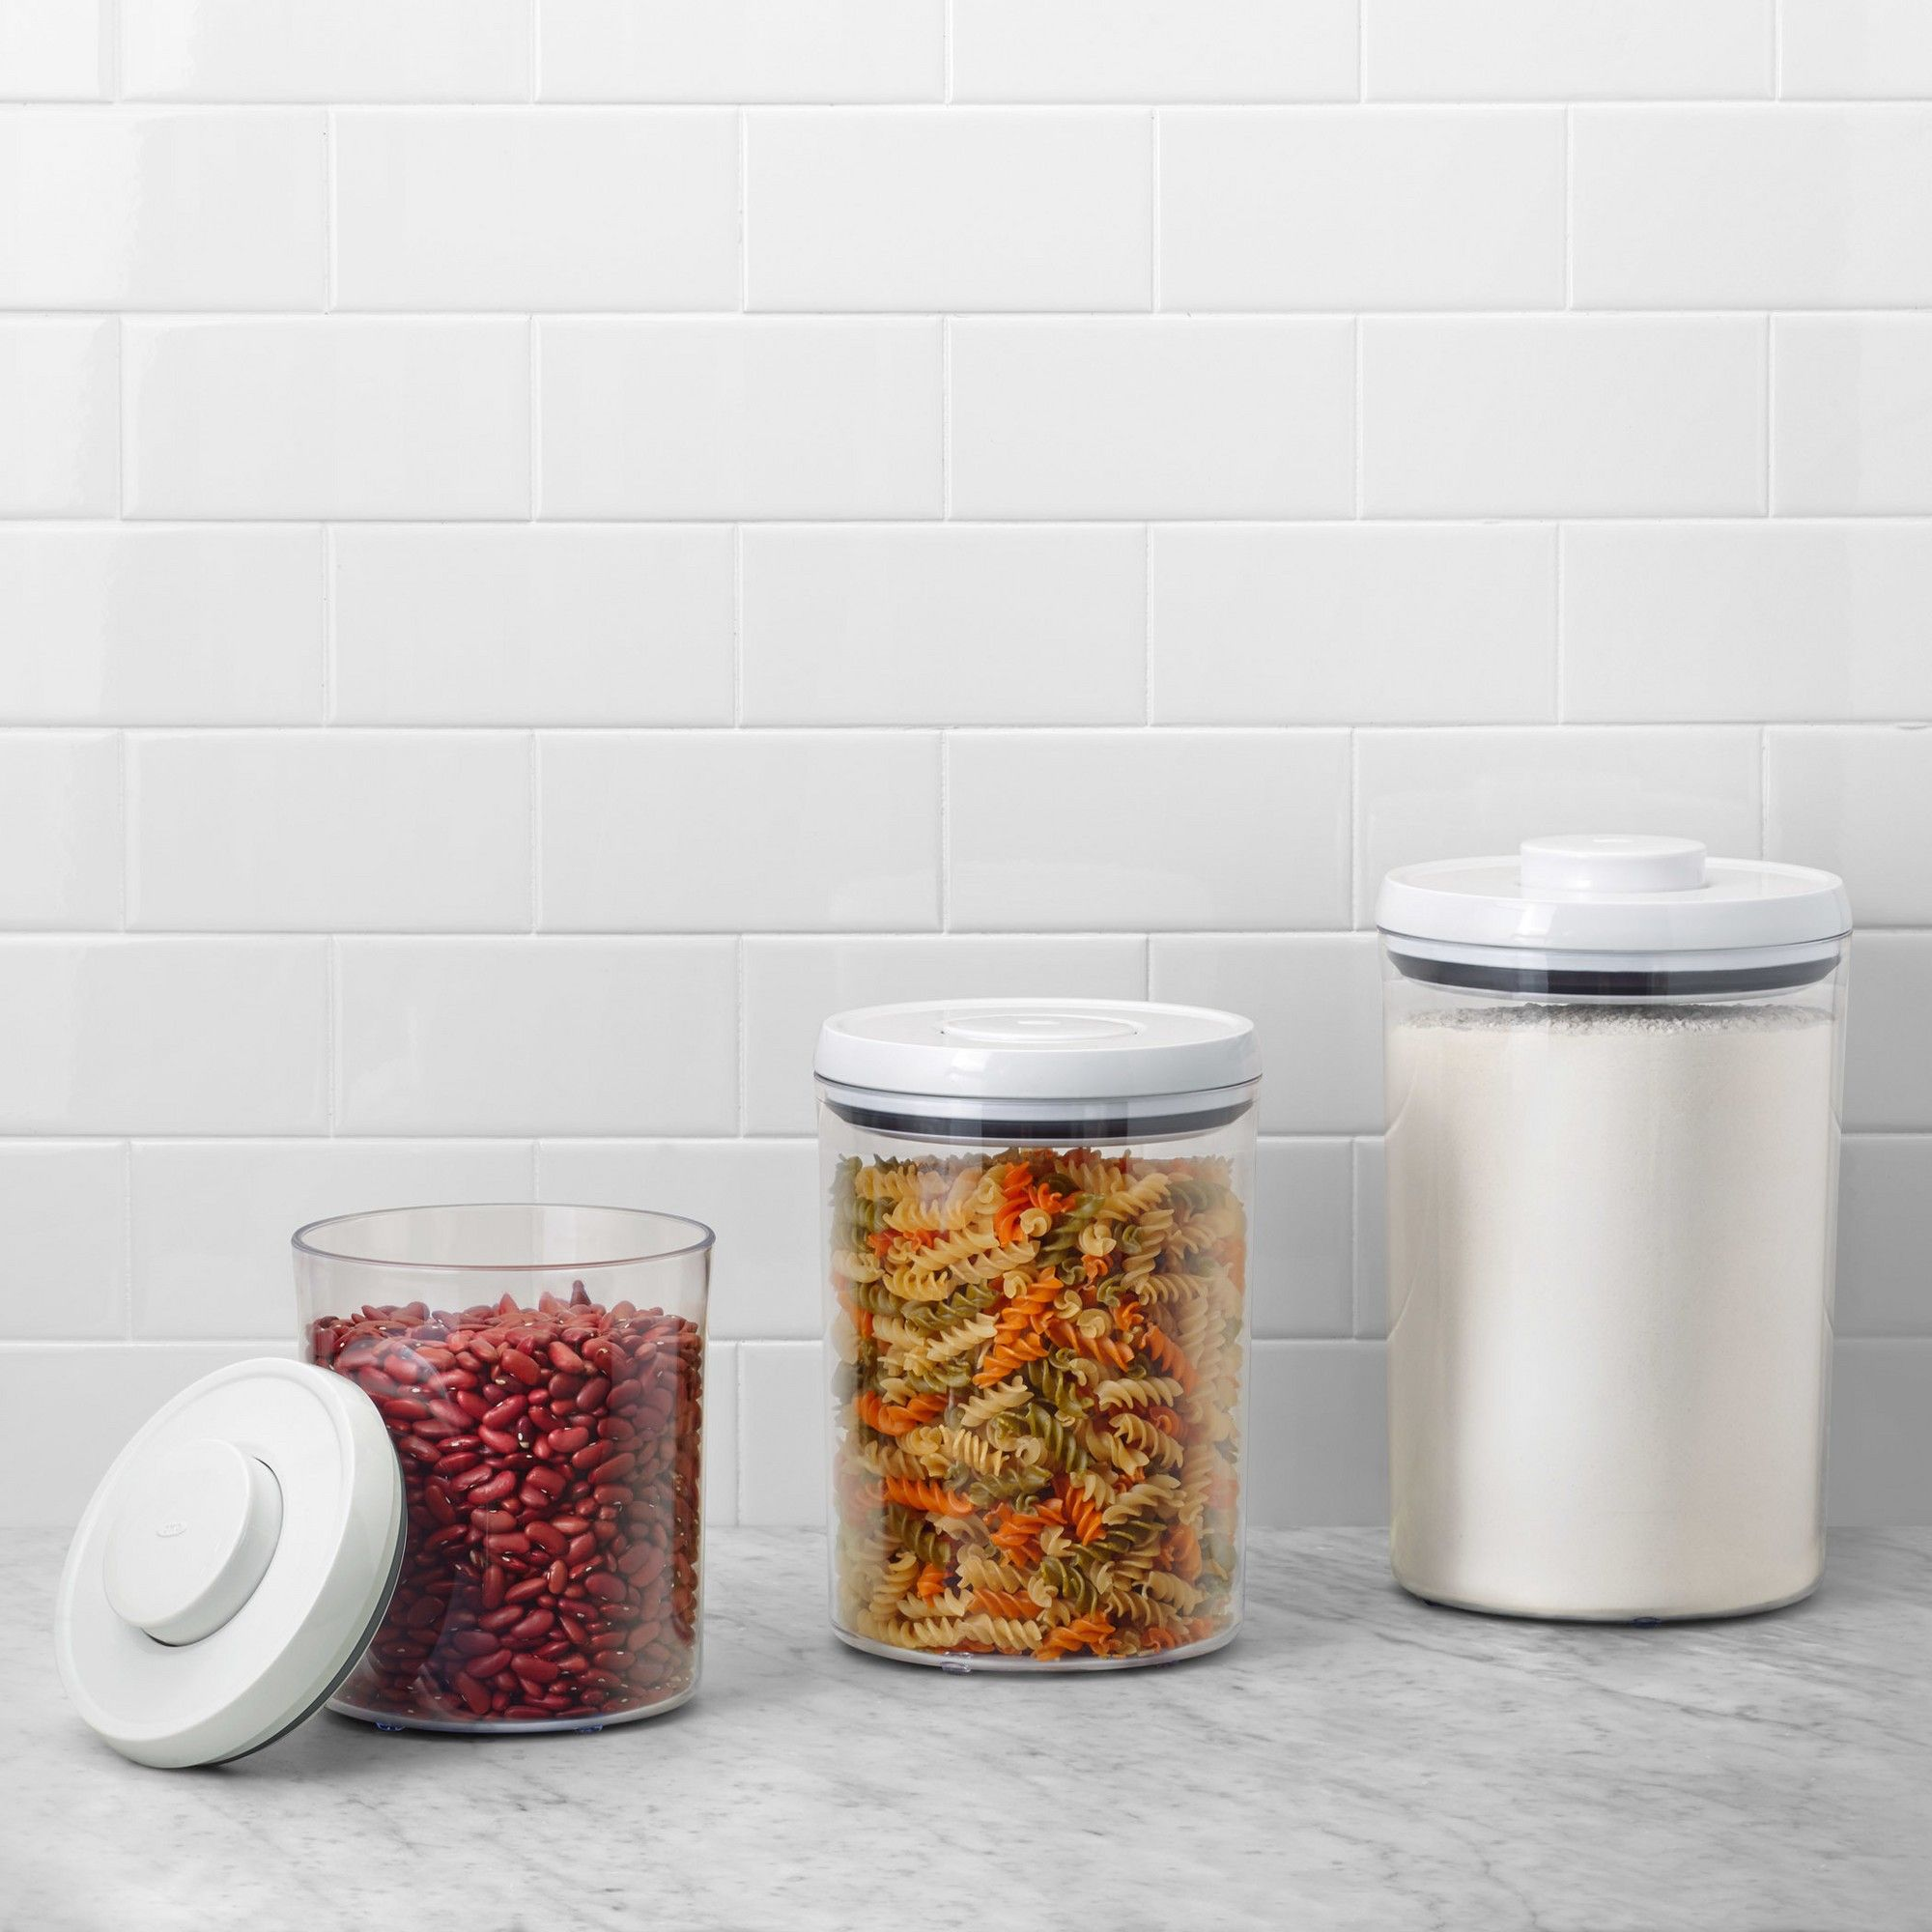 Oxo Pop 3pc Airtight Round Canister Set Oxo Pop Containers